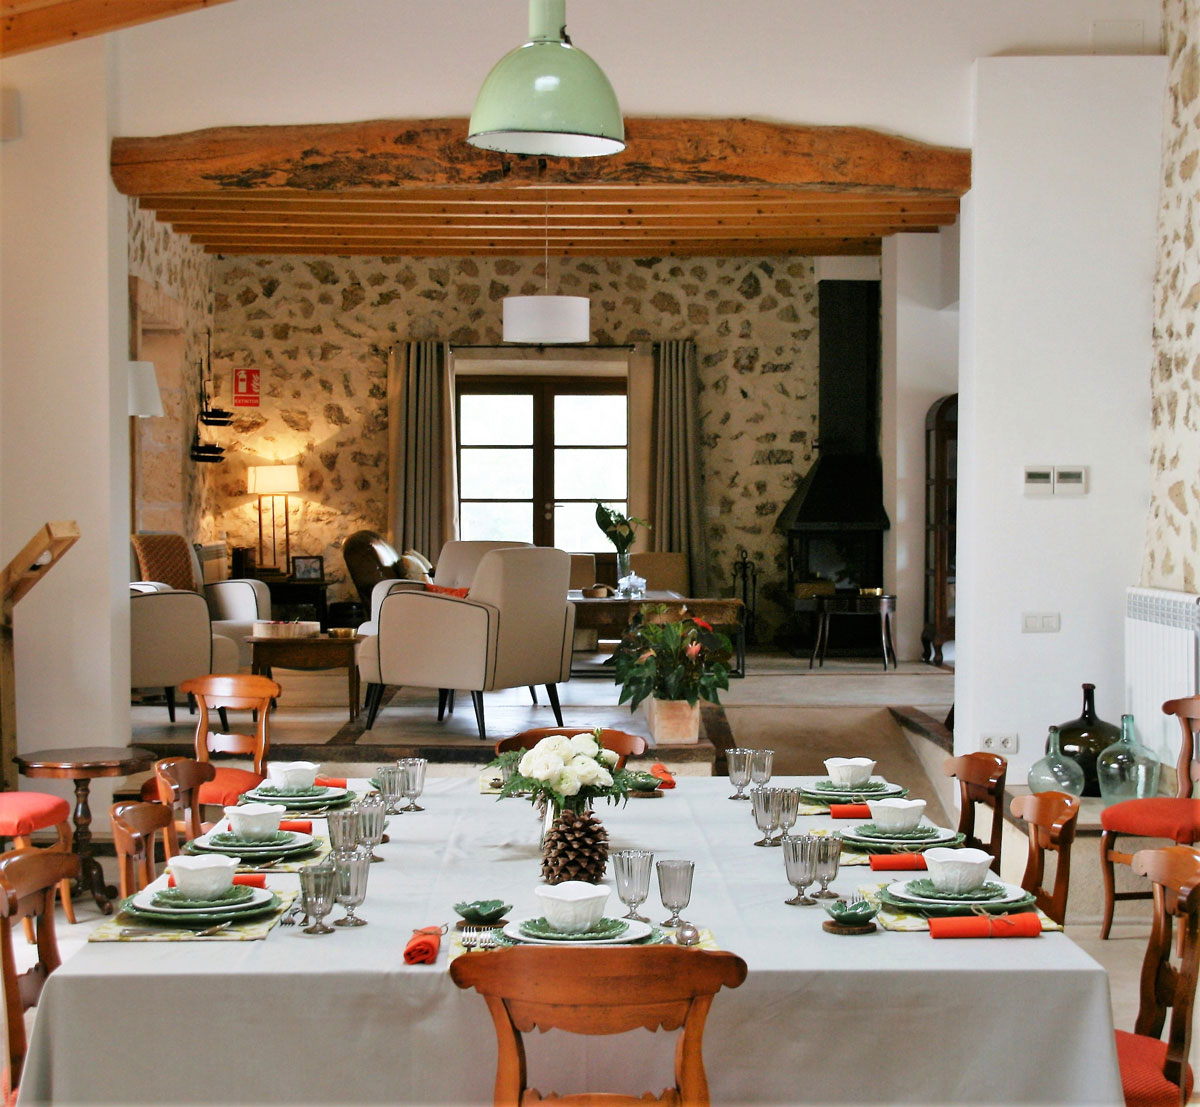 51Mallorca,holidays,countryhouse,finequality,pool,relax